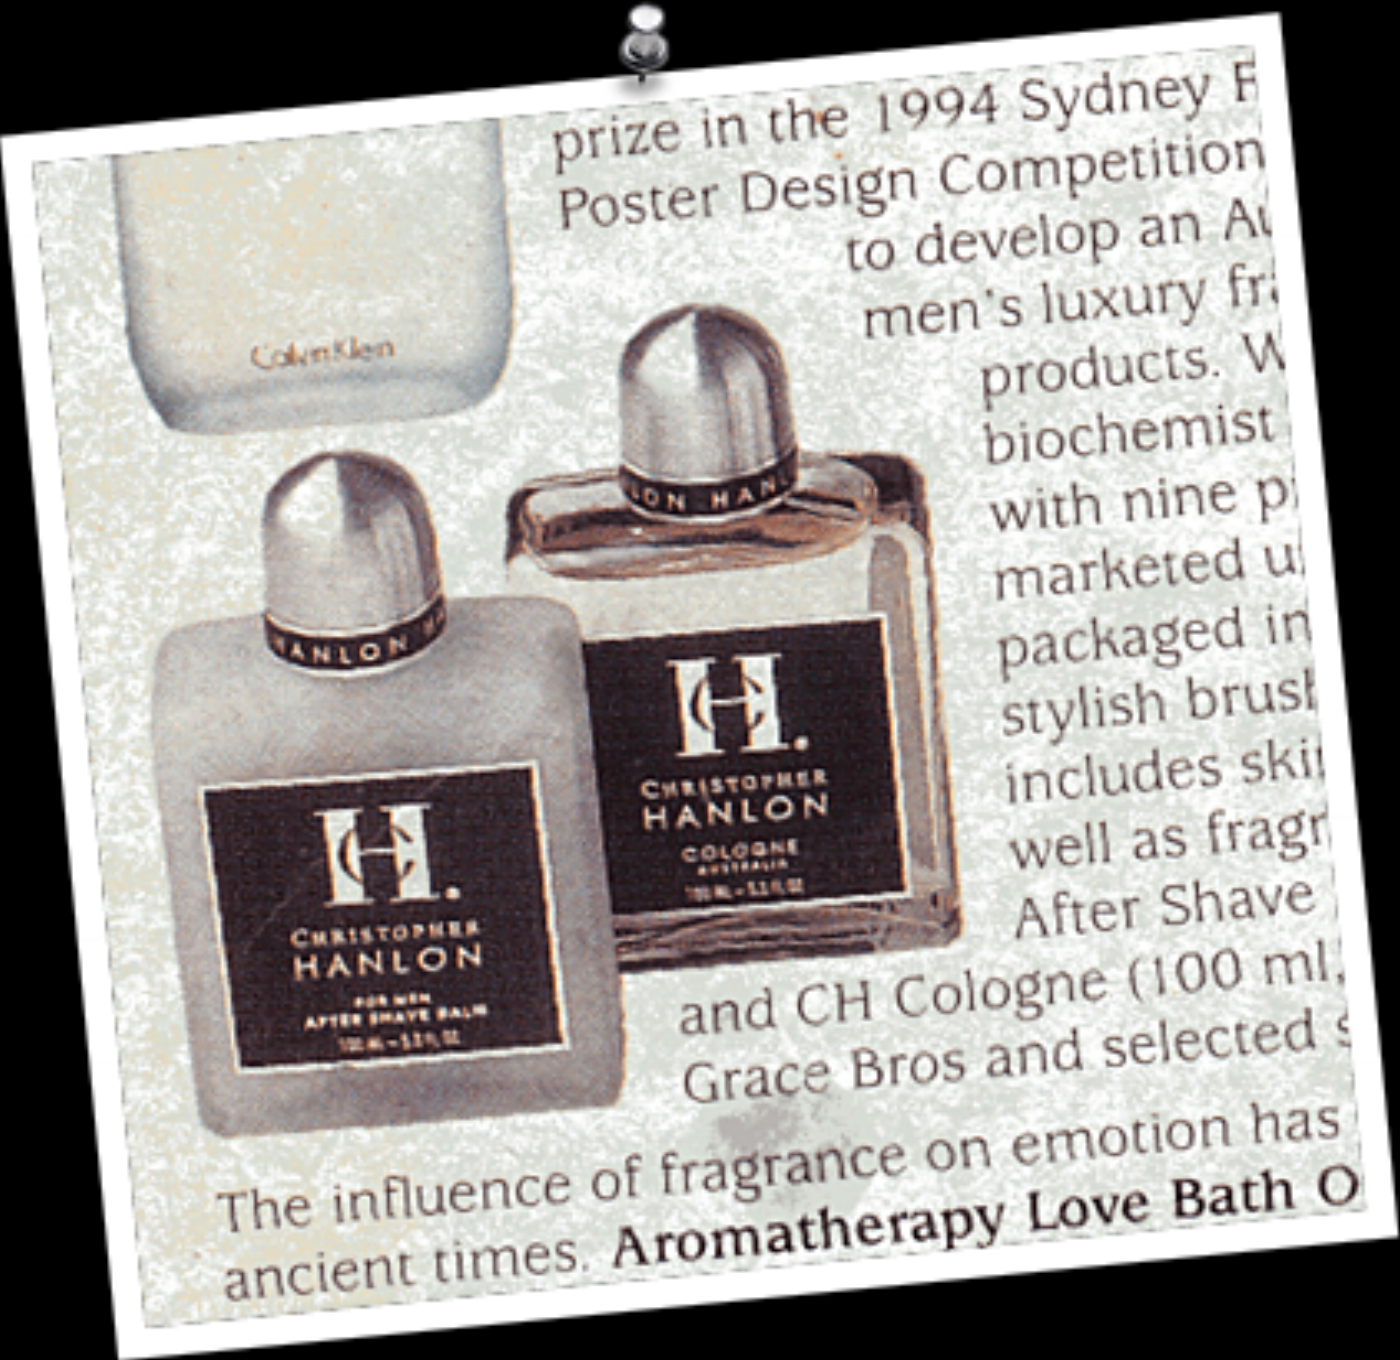 PICTURED ABOVE: EDITORIAL FROM TIME MAGAZINE 1995. HANLON'S® FIRST PROFESSIONALLY DEVELOPED PERFUME WAS CALLED 'COLOGNE'. THE DEPARTMENT STORE LINE WAS LAUNCHED AUSTRALIA WIDE IN MYERS (GRACE BROS) WITH FIVE THOUSAND DOLLARS (PRIZE MONEY FROM THE 1994 SYDNEY FESTIVAL DESIGN COMPETITION). AS A NAÏVE YOUTH WITH NO BUSINESS CONNECTIONS, NO MEDIA-FRIENDS, NO CORPORATE FINANCIAL BACKING AND NO NAME, HANLON® BEGAN COMPETING WITH THE WORLD'S LARGEST COSMETIC COMPANIES LIKE CALVIN KLEIN, GUCCI (AKA TOM FORD) AND DIOR IN AUSTRALIA'S LARGEST DEPARTMENT STORE. WITHIN A FEW YEARS WITH THE HELP OF HIS TEENAGE FRIENDS, HANLON® BECAME THE NUMBER ONE SELLING PERFUME BRAND.